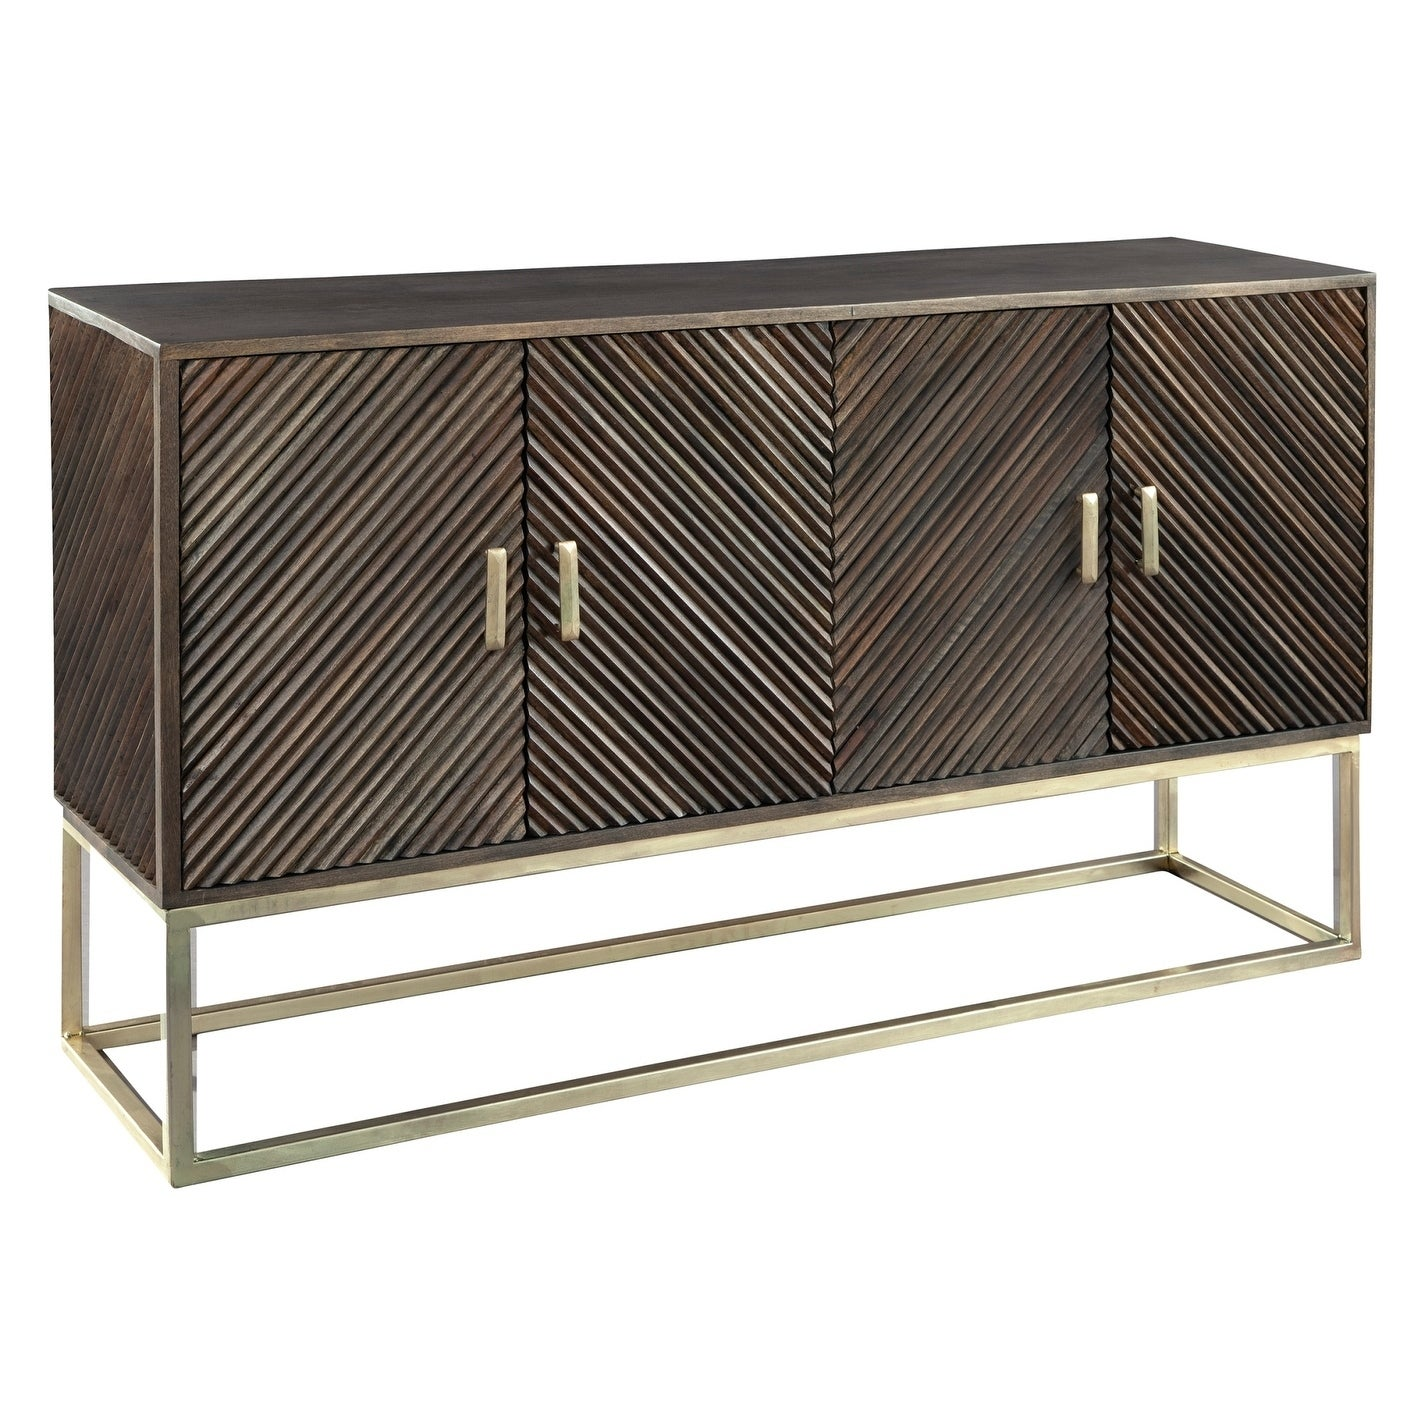 Shop hekman furniture chevron door contemporary modern glam and chic storage cabinet liquor cabinet or console free shipping today overstock com